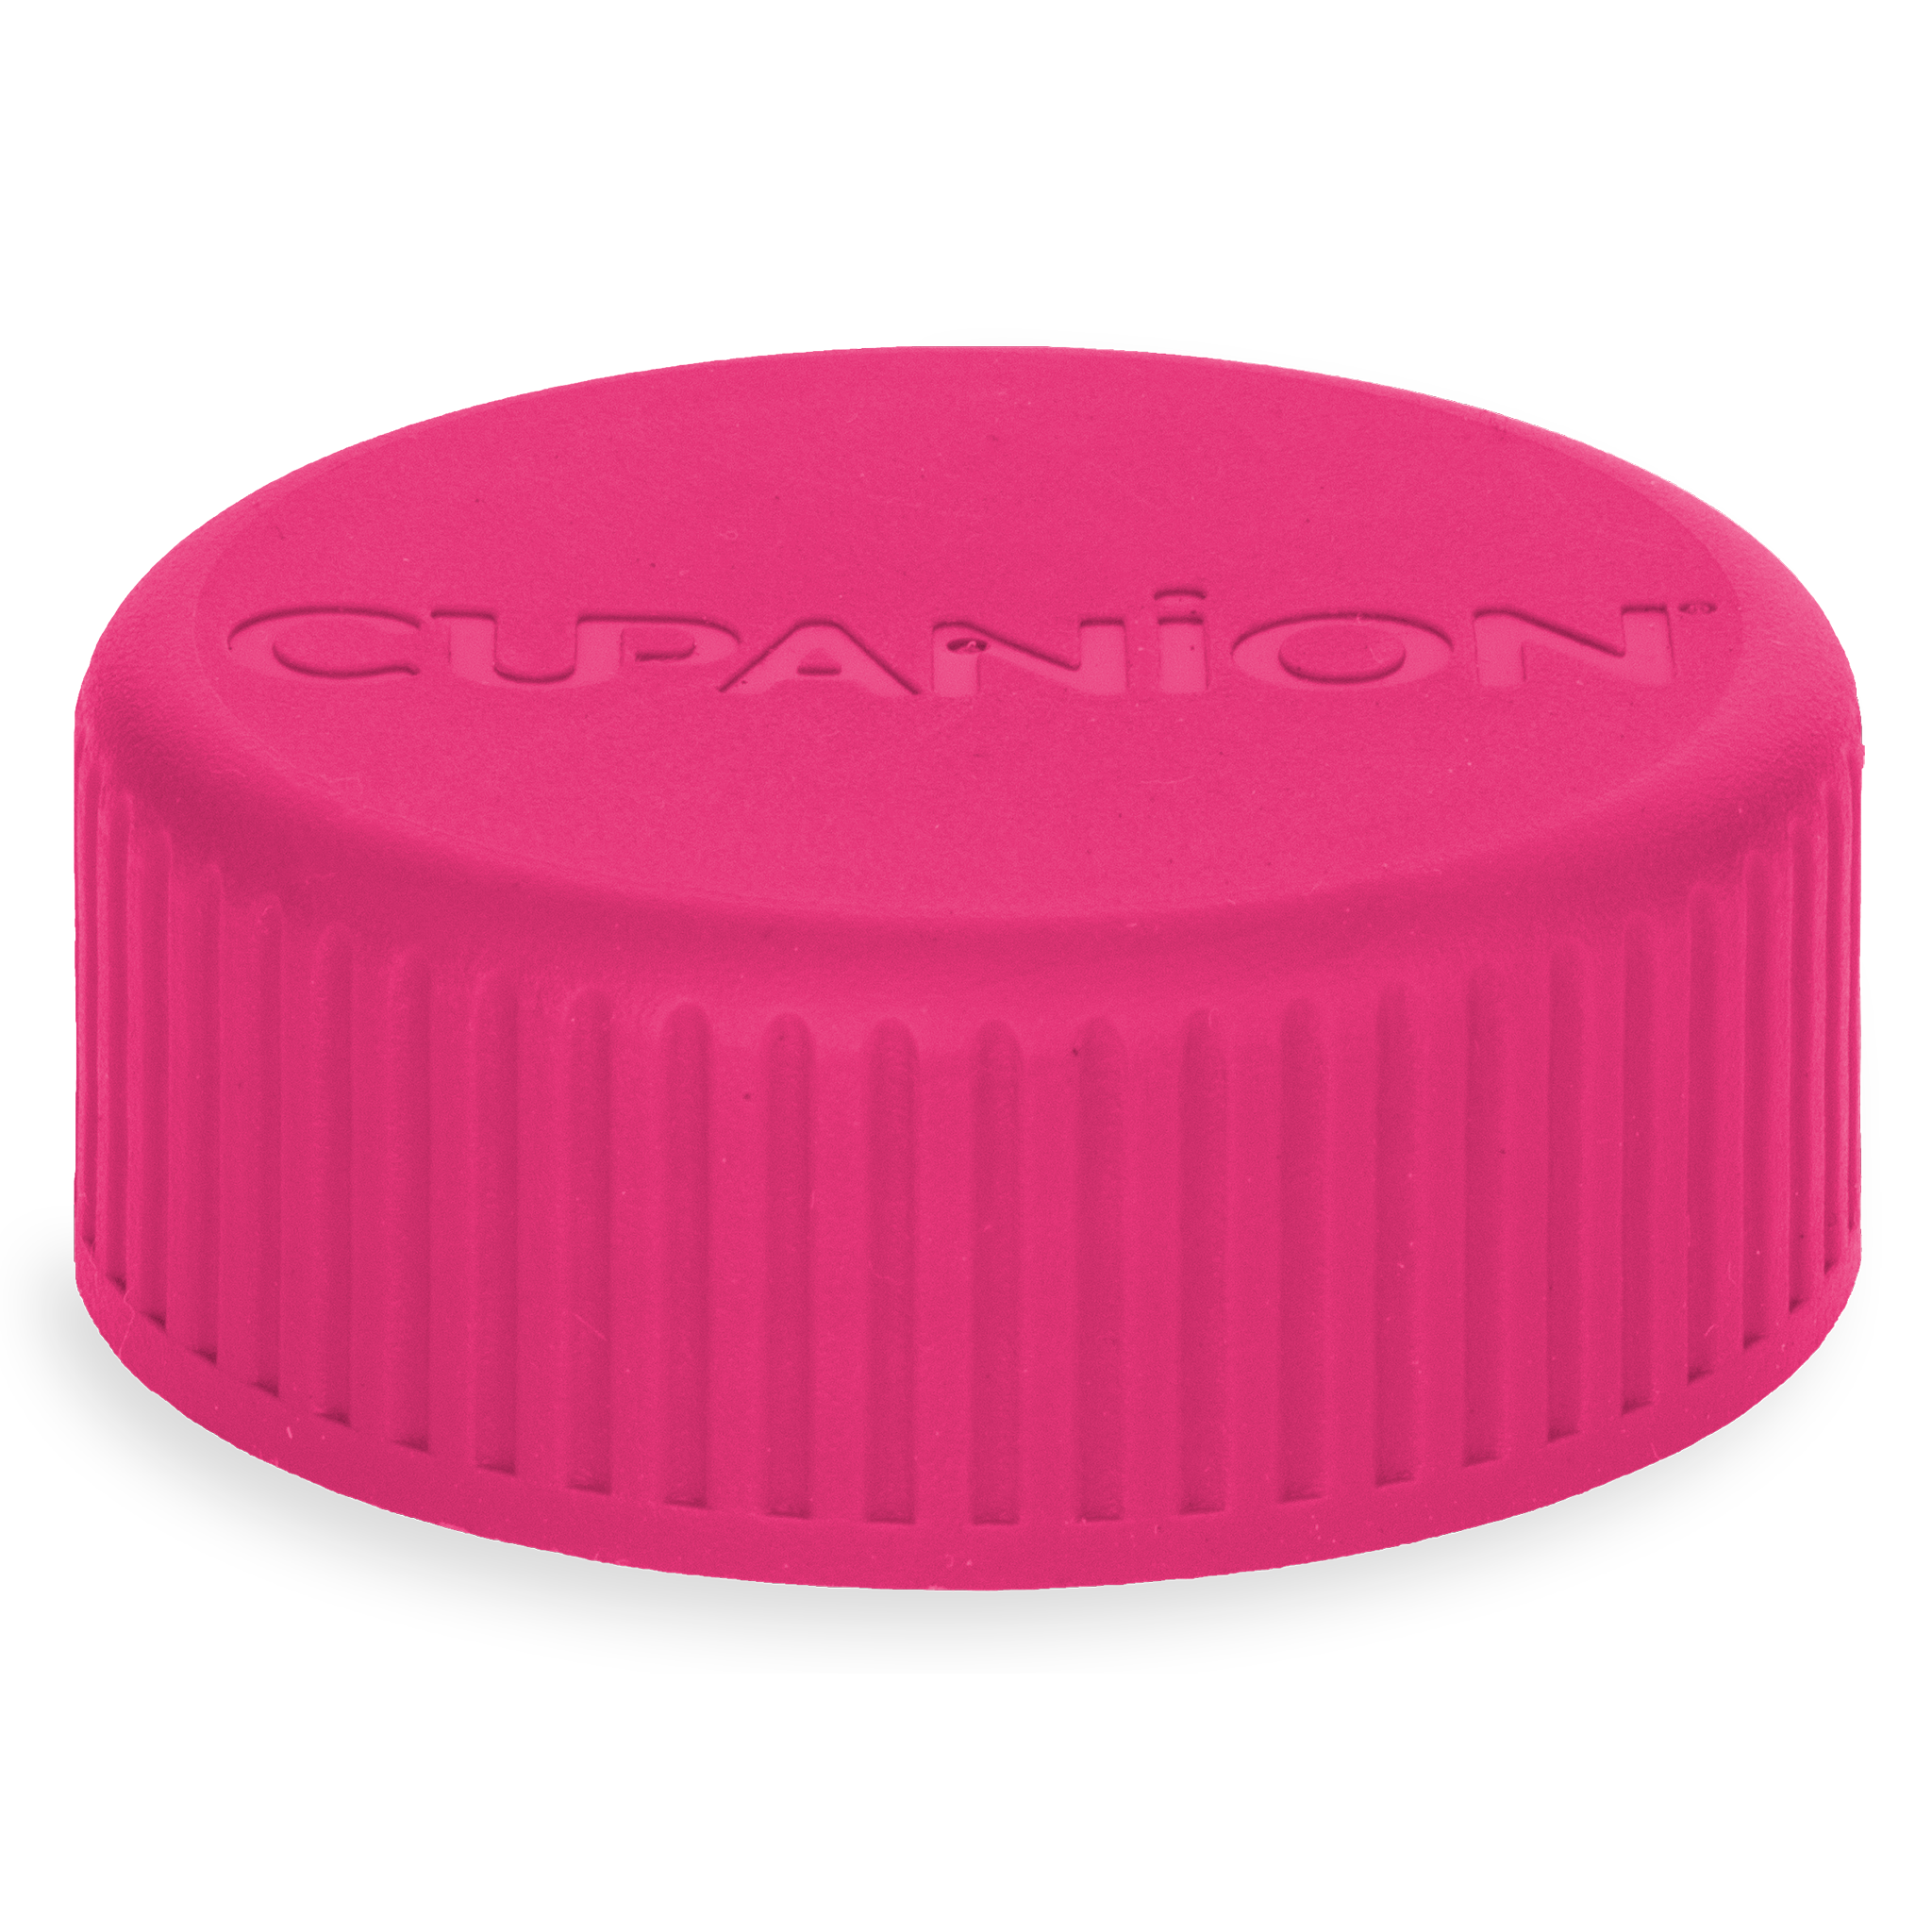 Rose Pink - Cupanion Reusable Water Bottle Lid